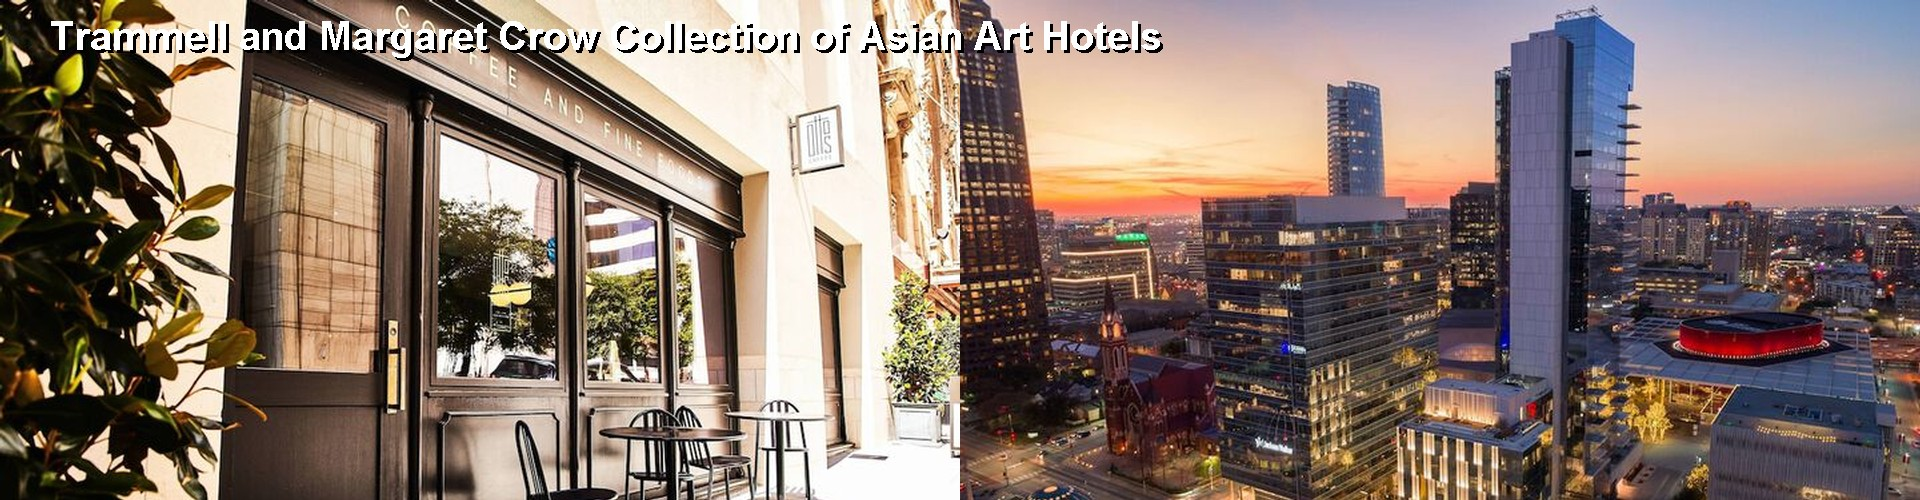 5 Best Hotels near Trammell and Margaret Crow Collection of Asian Art